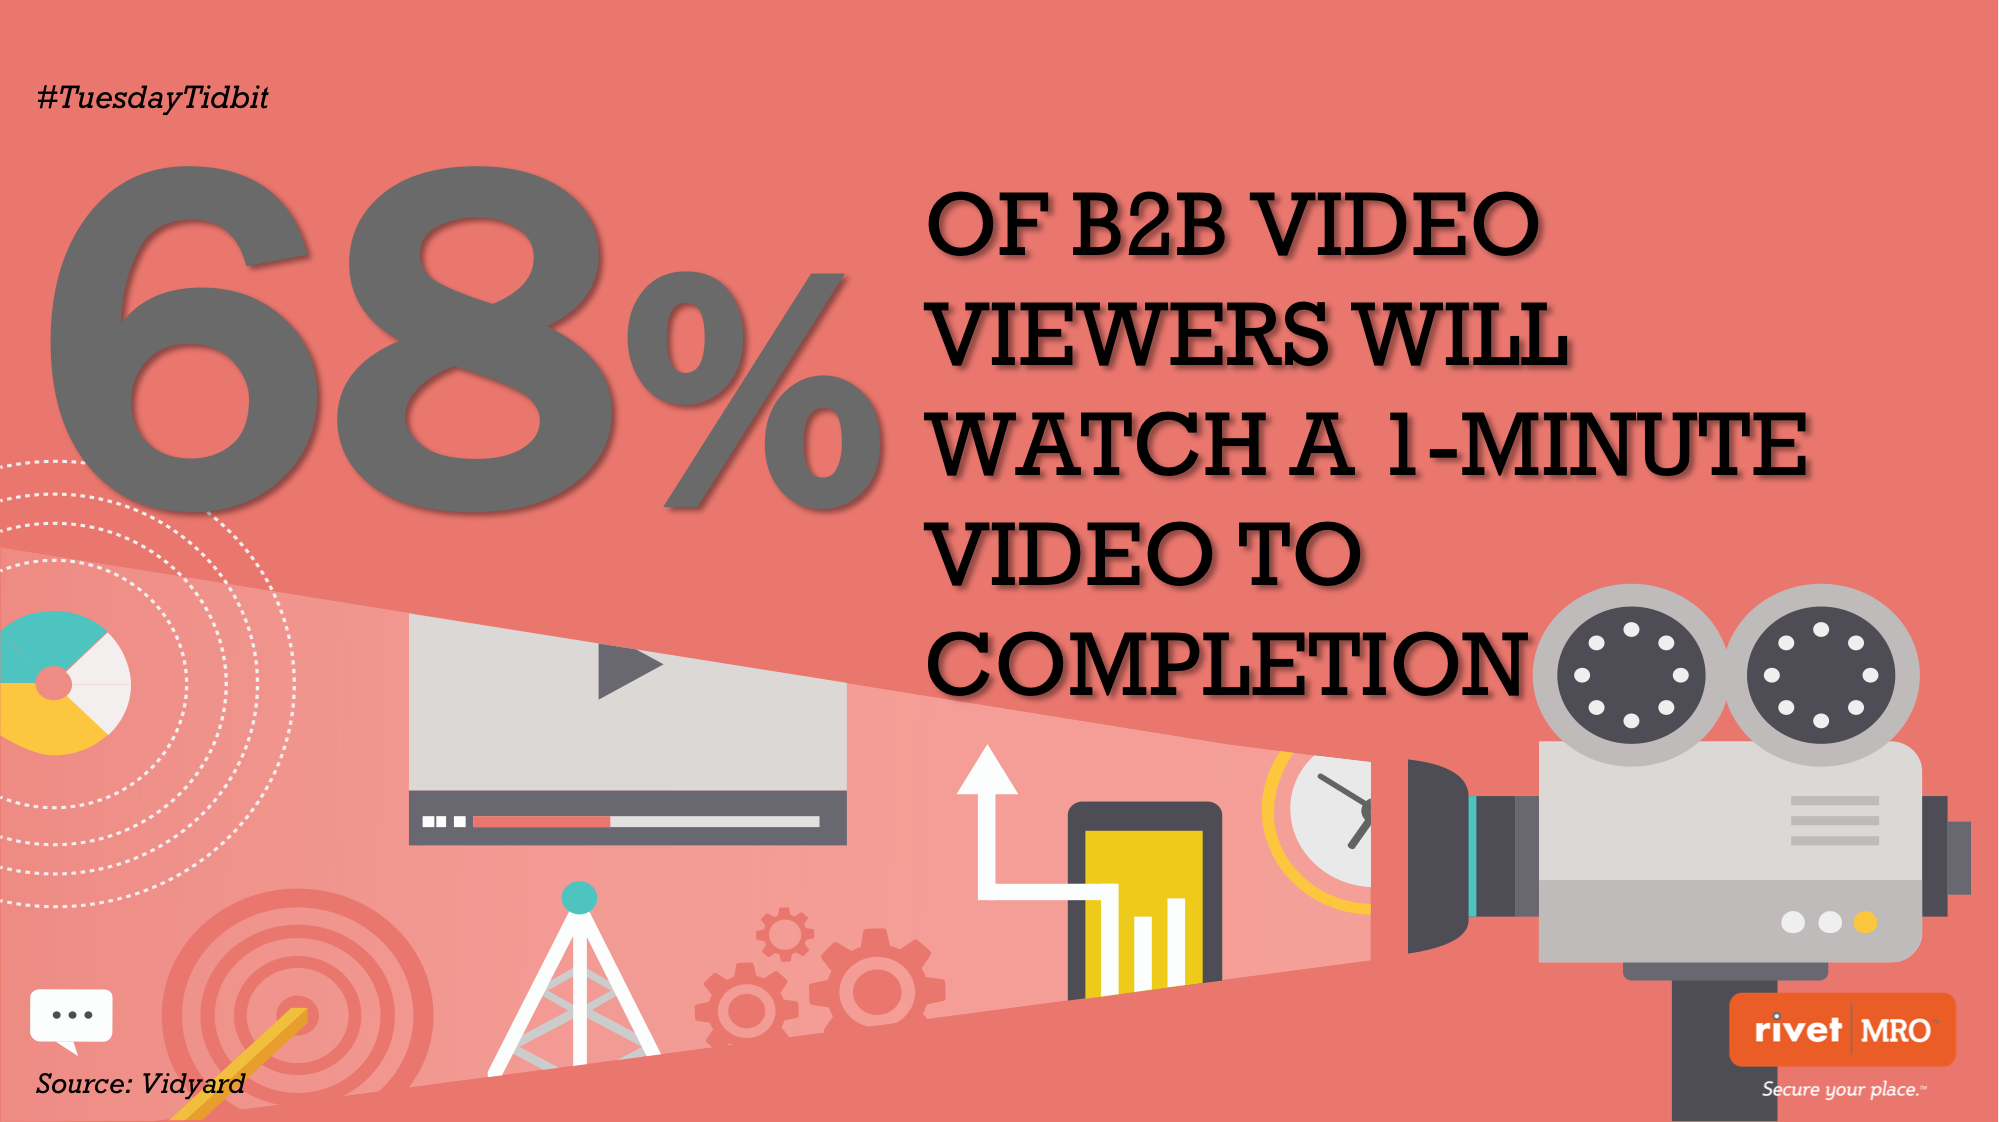 B2B Video Tuesday Tidbit by Rivet MRO Industrial Marketing Agency and Distributor Co-op Marketing Consultant.png